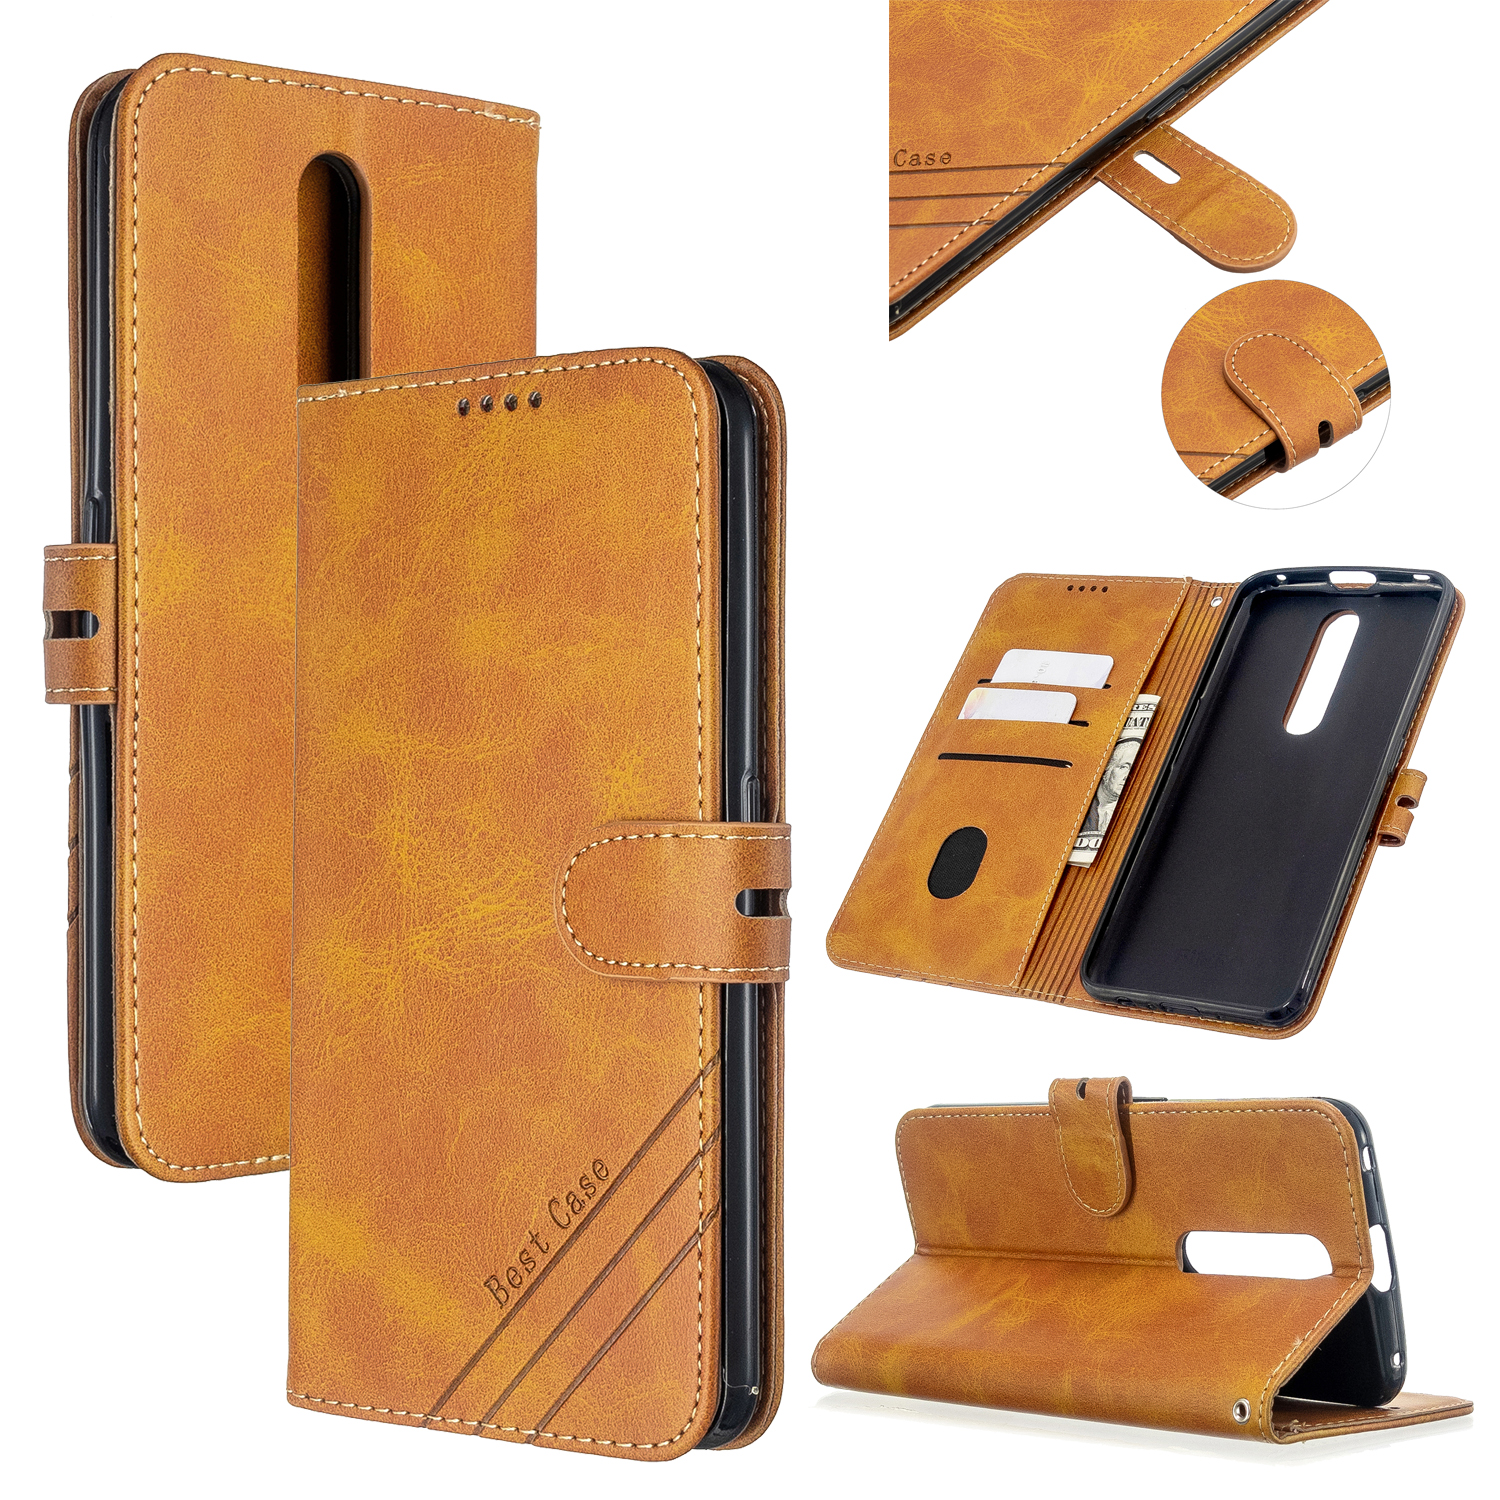 For OPPO F11/F11 Pro Case Soft Leather Cover with Denim Texture Precise Cutouts Wallet Design Buckle Closure Smartphone Shell  yellow